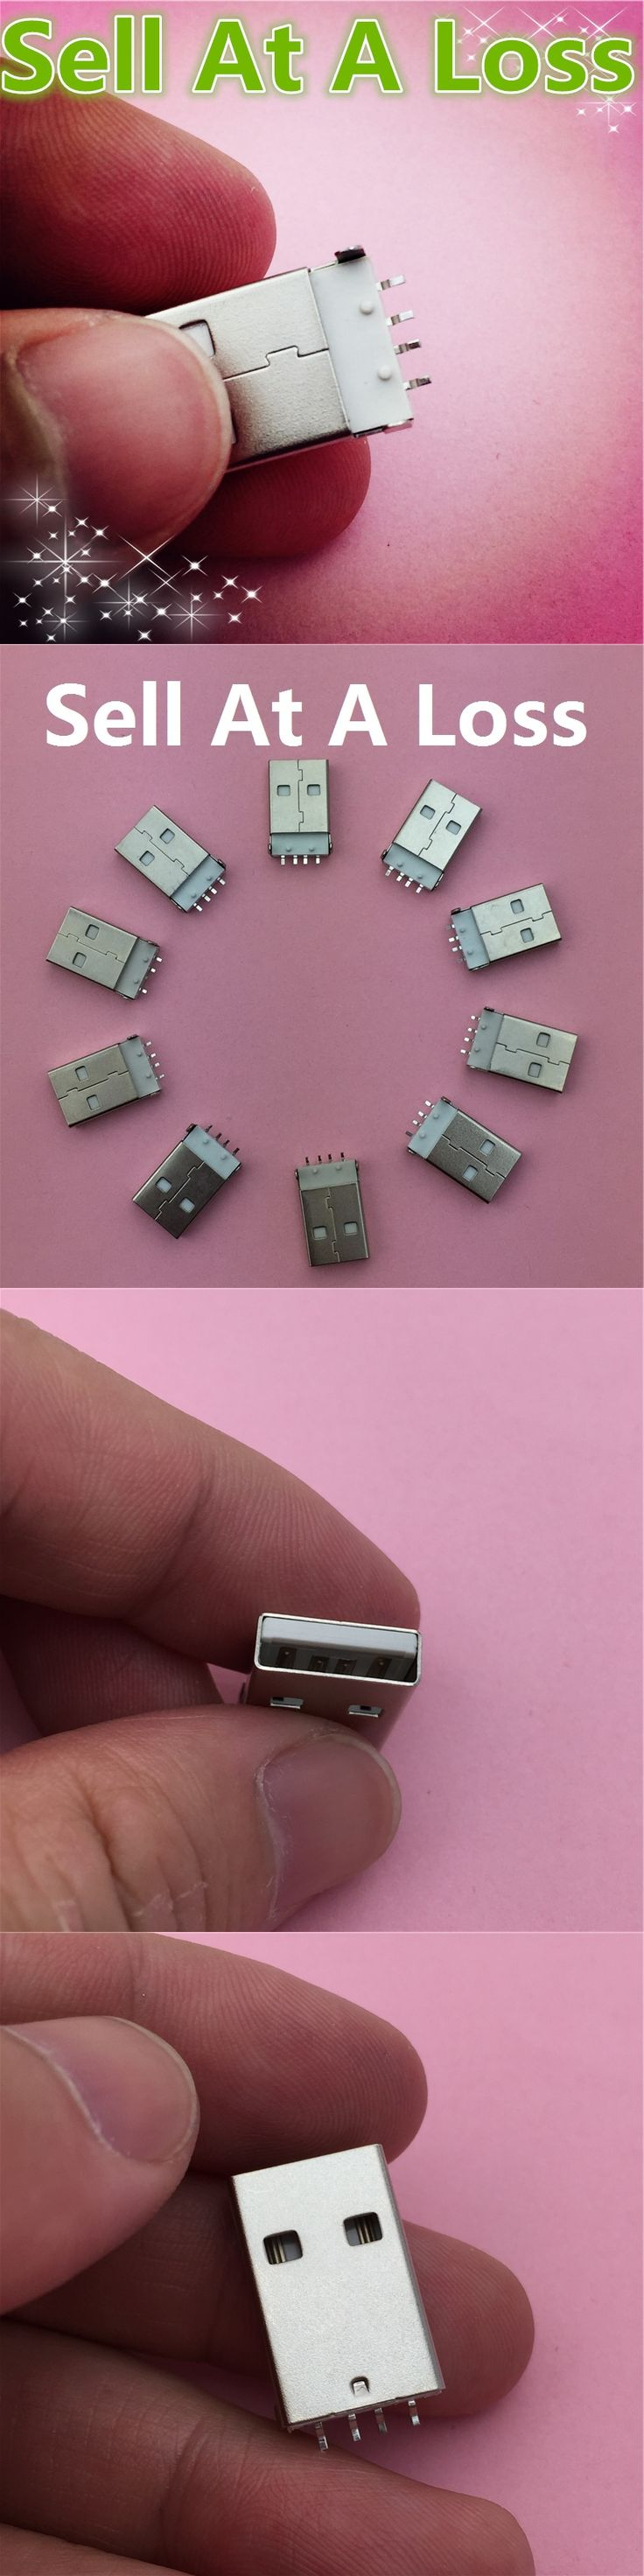 10pcs G48 USB 2.0 4Pin A Type Male Plug Connector for Data Transmission Charging High Quality Sell At A Loss USA Belarus Ukraine